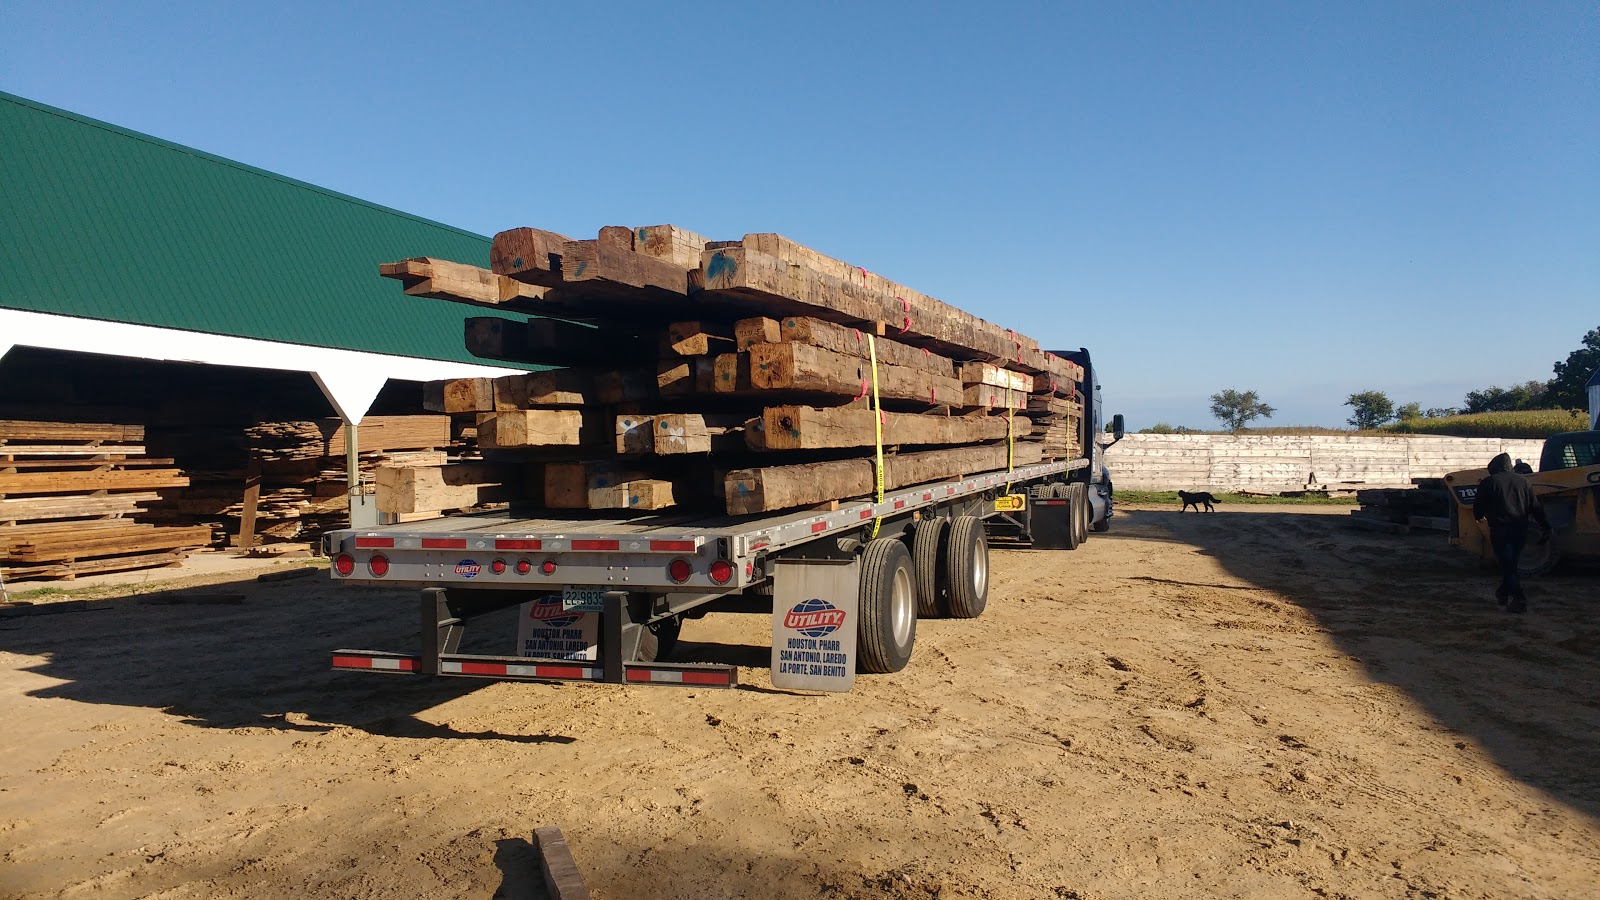 3x8 log siding hand hewn pine - We Scale Them Tally Them Scale And Tally Them Again Each Beam Is Marked And Inventoried When We Are Done Our Customers Get What They Asked For Which